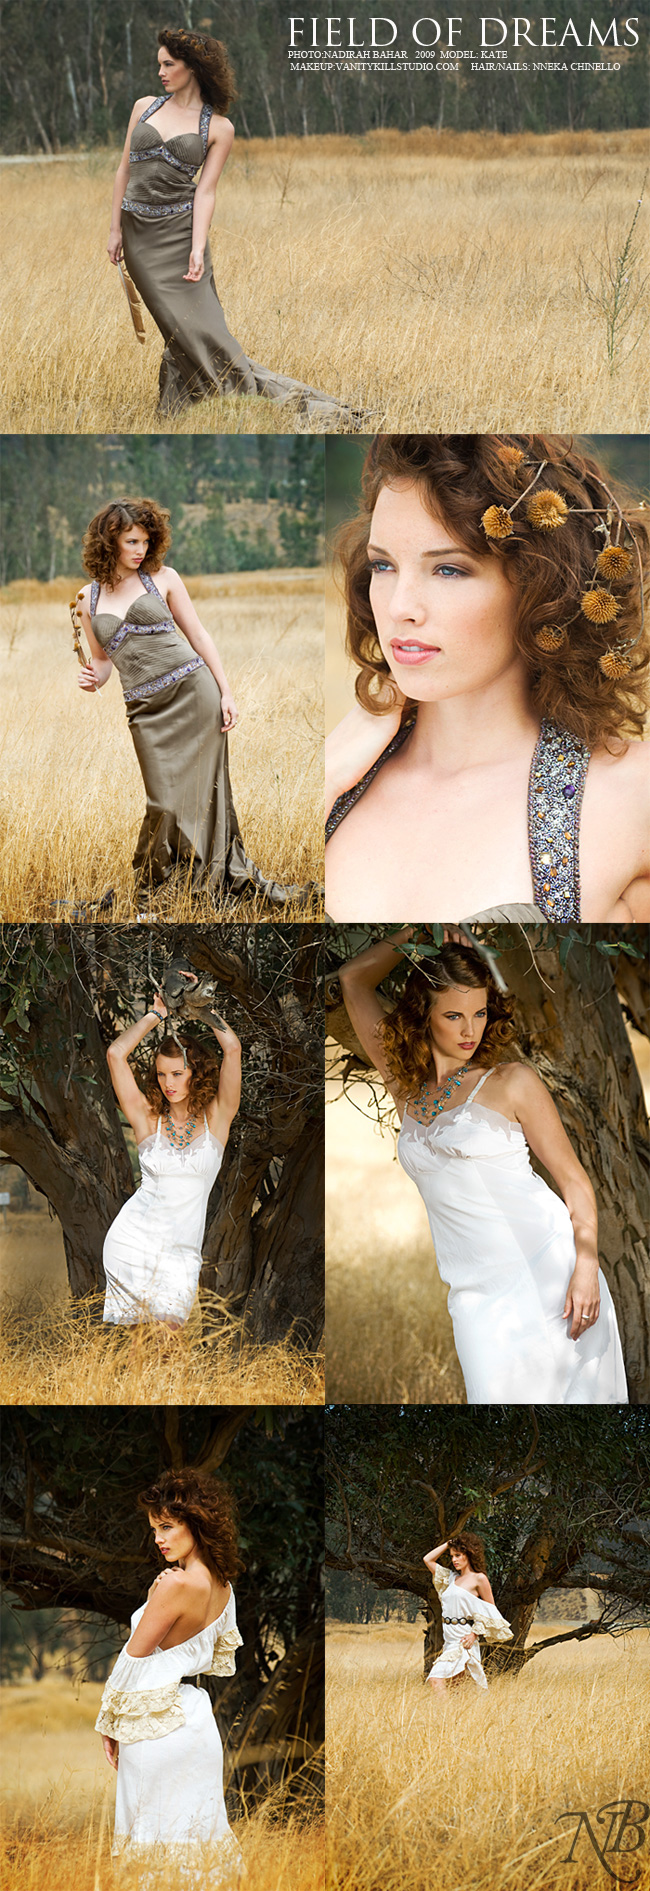 Female model photo shoot of Rana X and Kathryn Tressa by Nadirah B in Apple Valley, hair styled by Nneka Chinello , makeup by Alisha L Baijounas